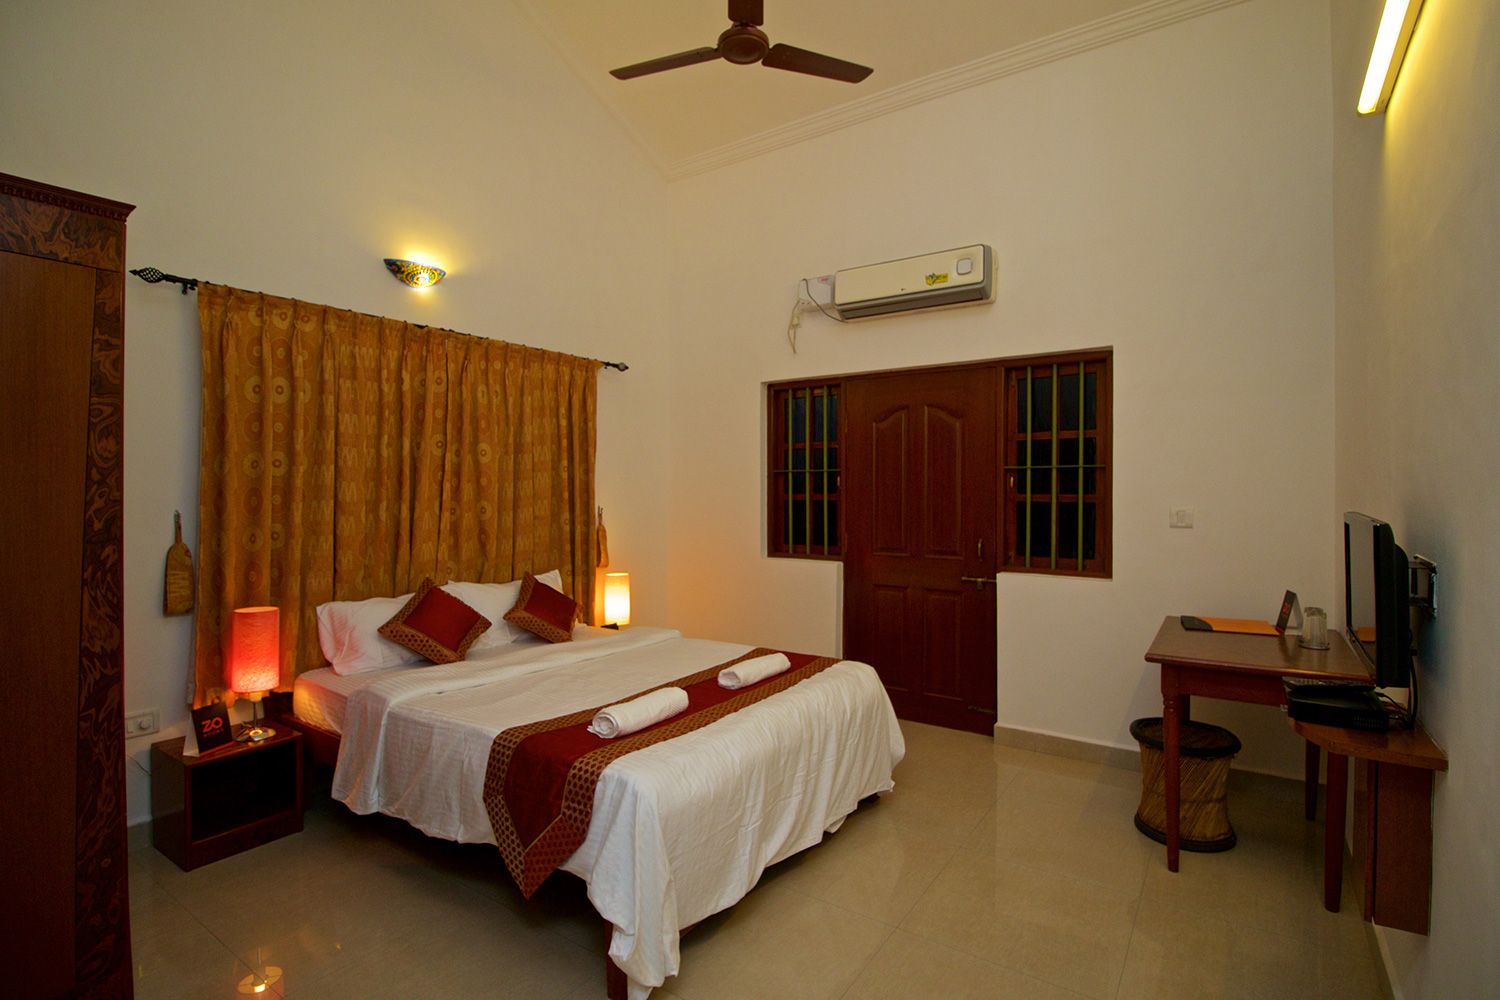 standard-ac-rooms-at-anjuna-to-stay